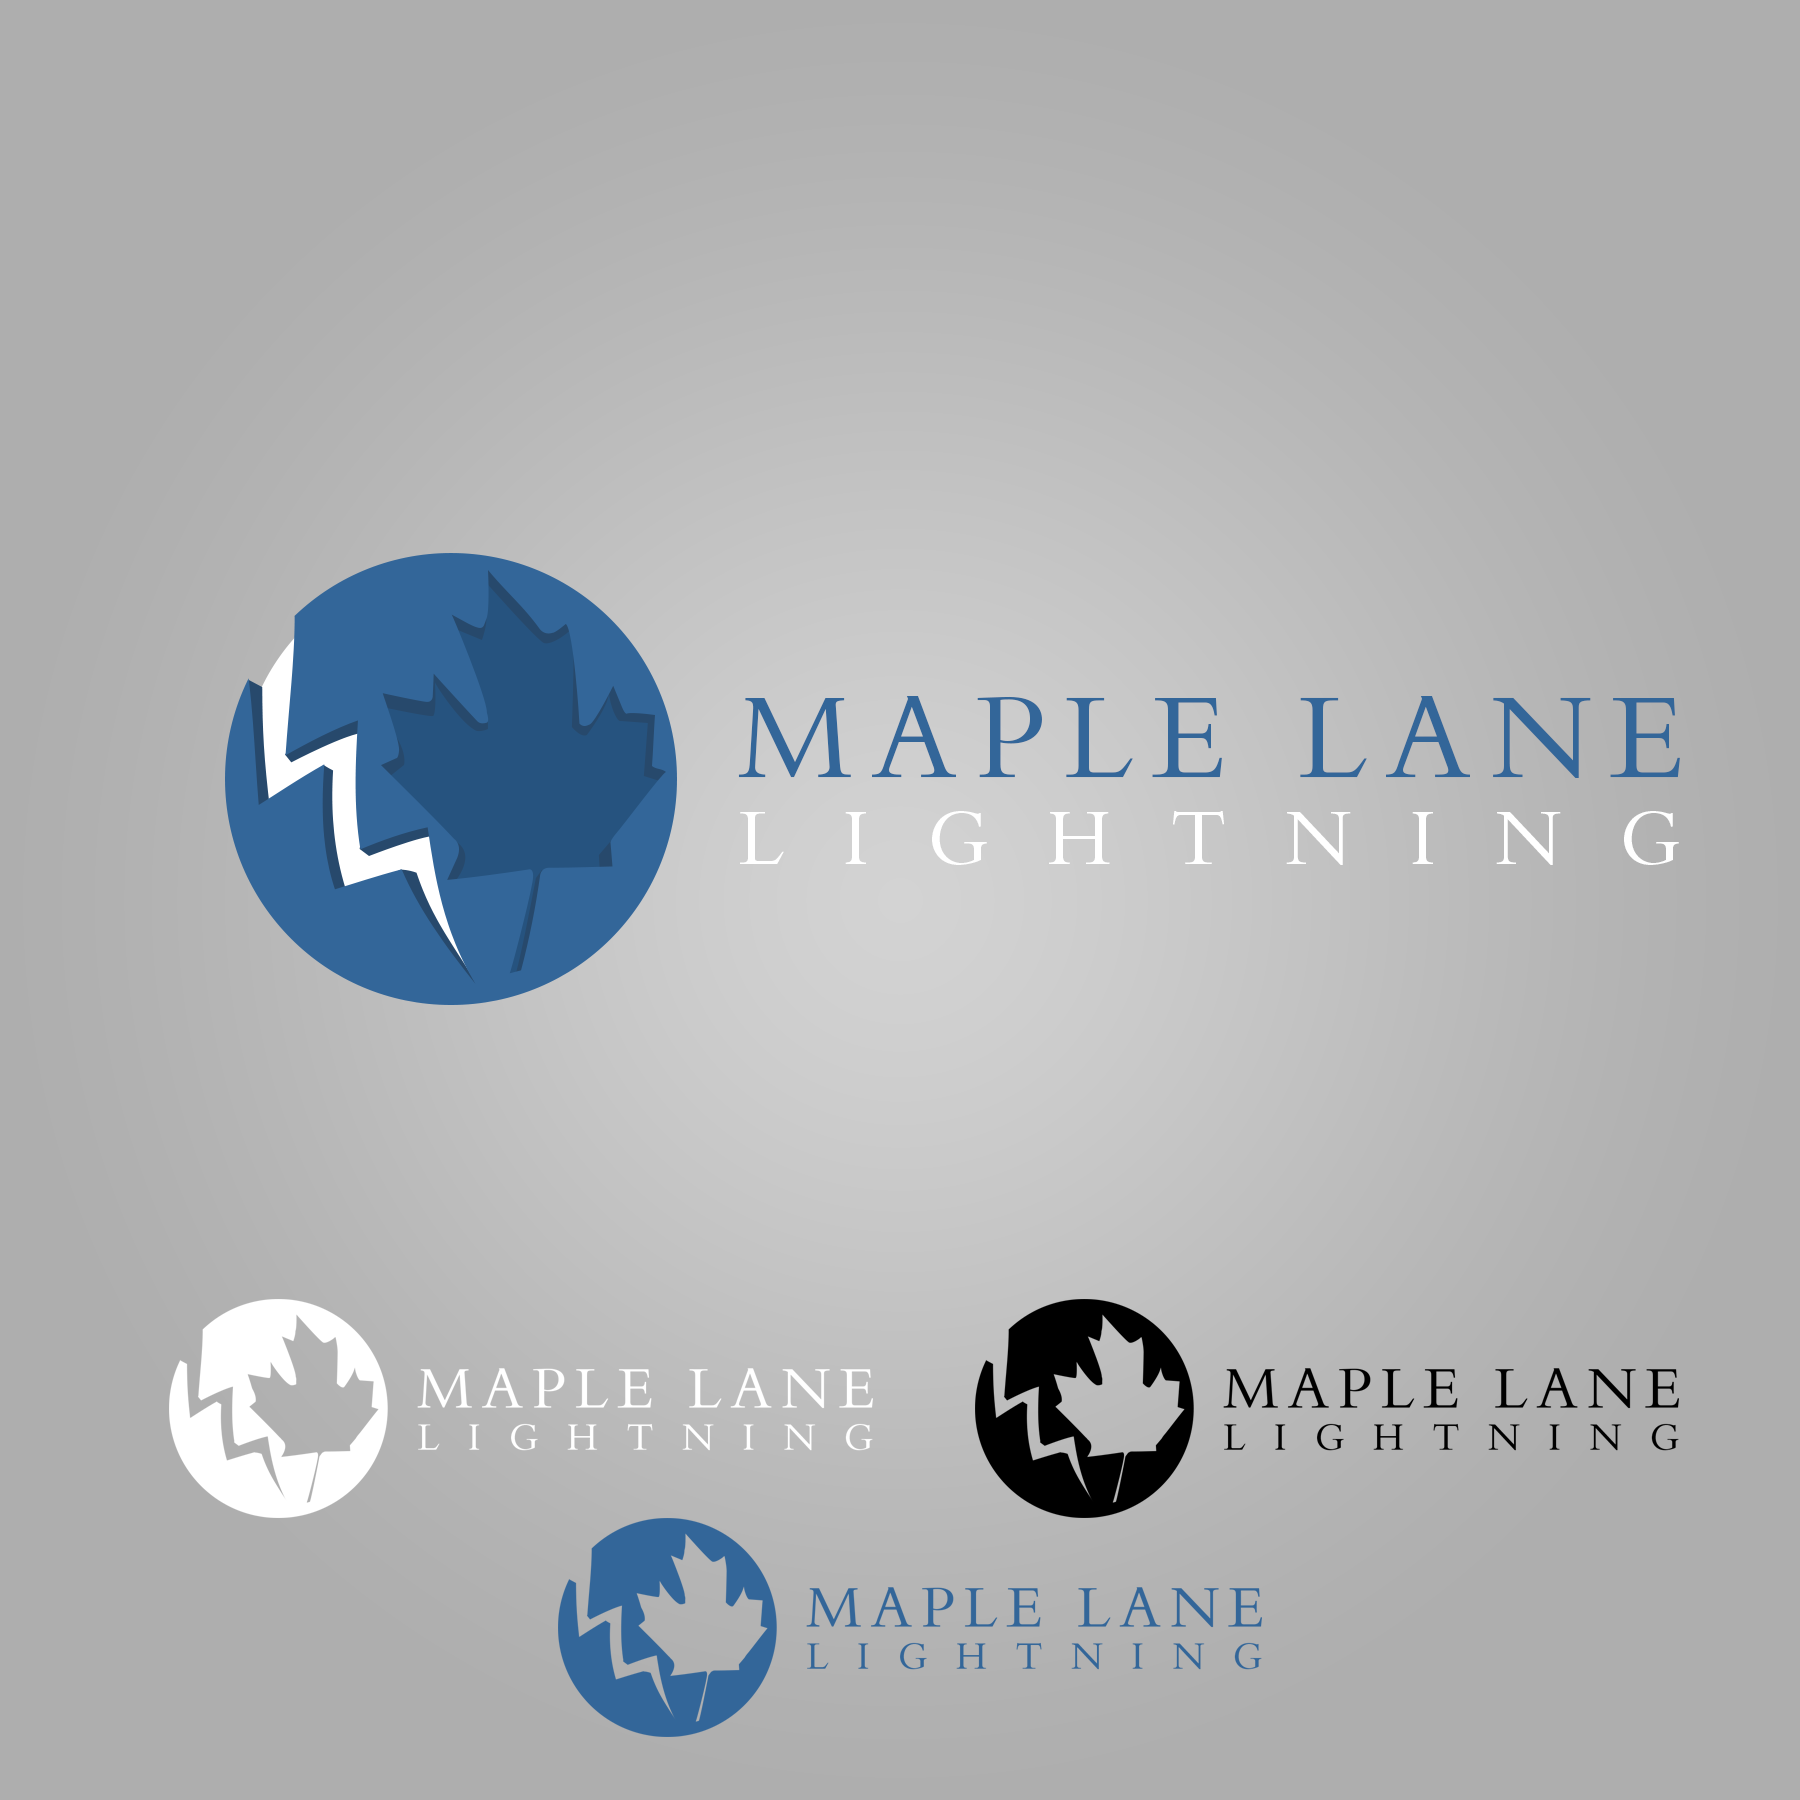 Logo Design by Lemuel Arvin Tanzo - Entry No. 52 in the Logo Design Contest Maple Lane Logo Design.